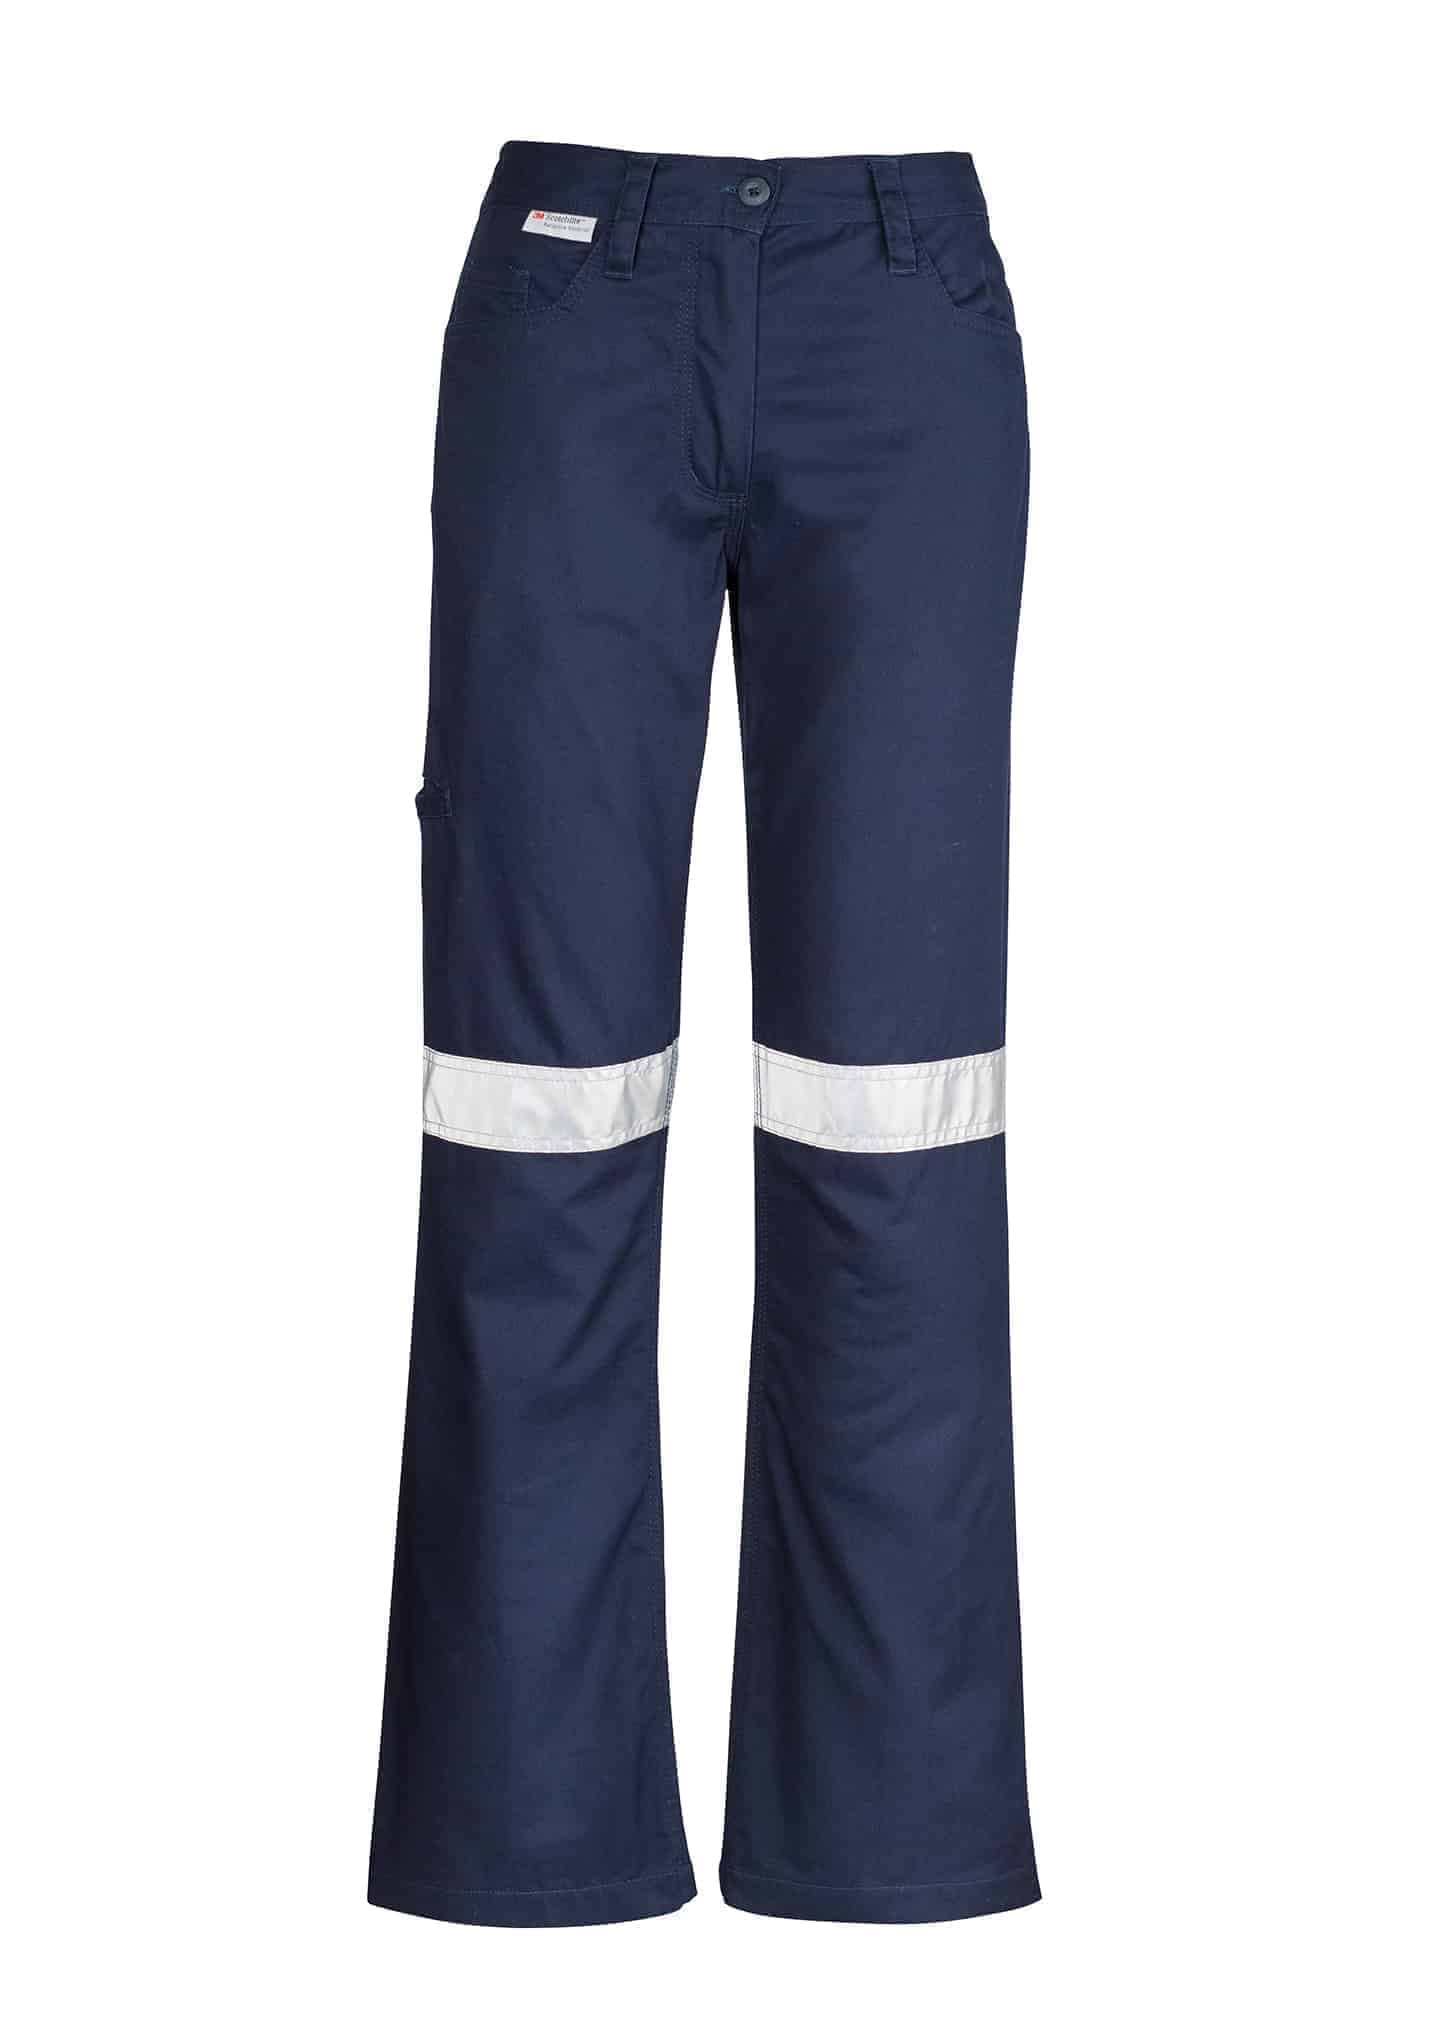 Womens Taped Utility Pant